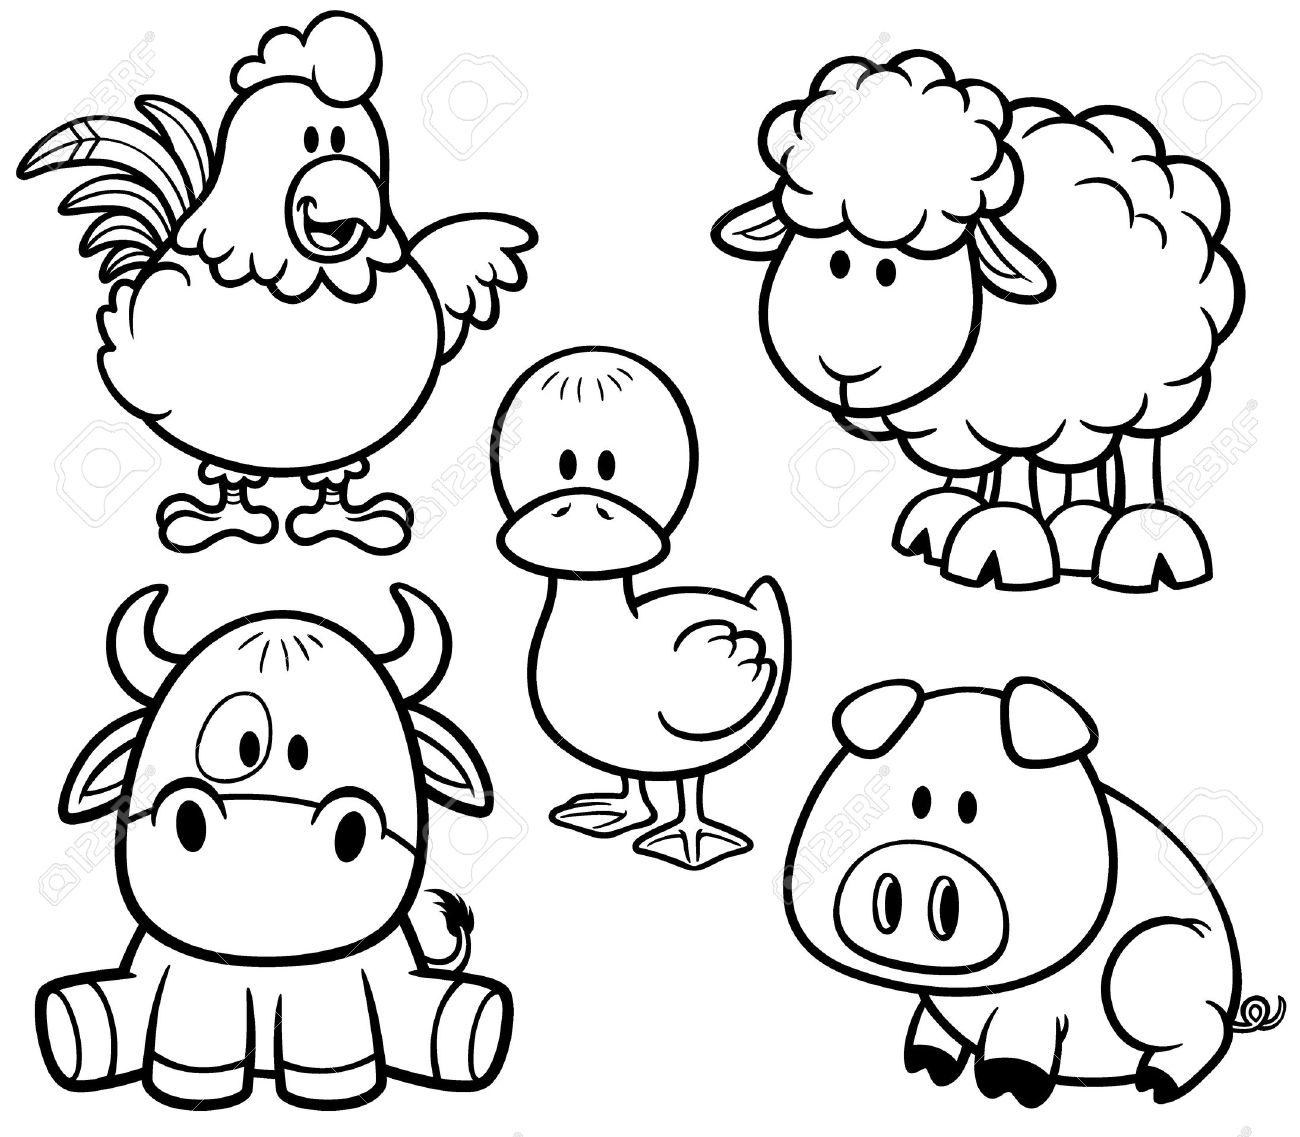 coloring pages for kids online free printable boy coloring pages for kids cool2bkids coloring online for pages kids